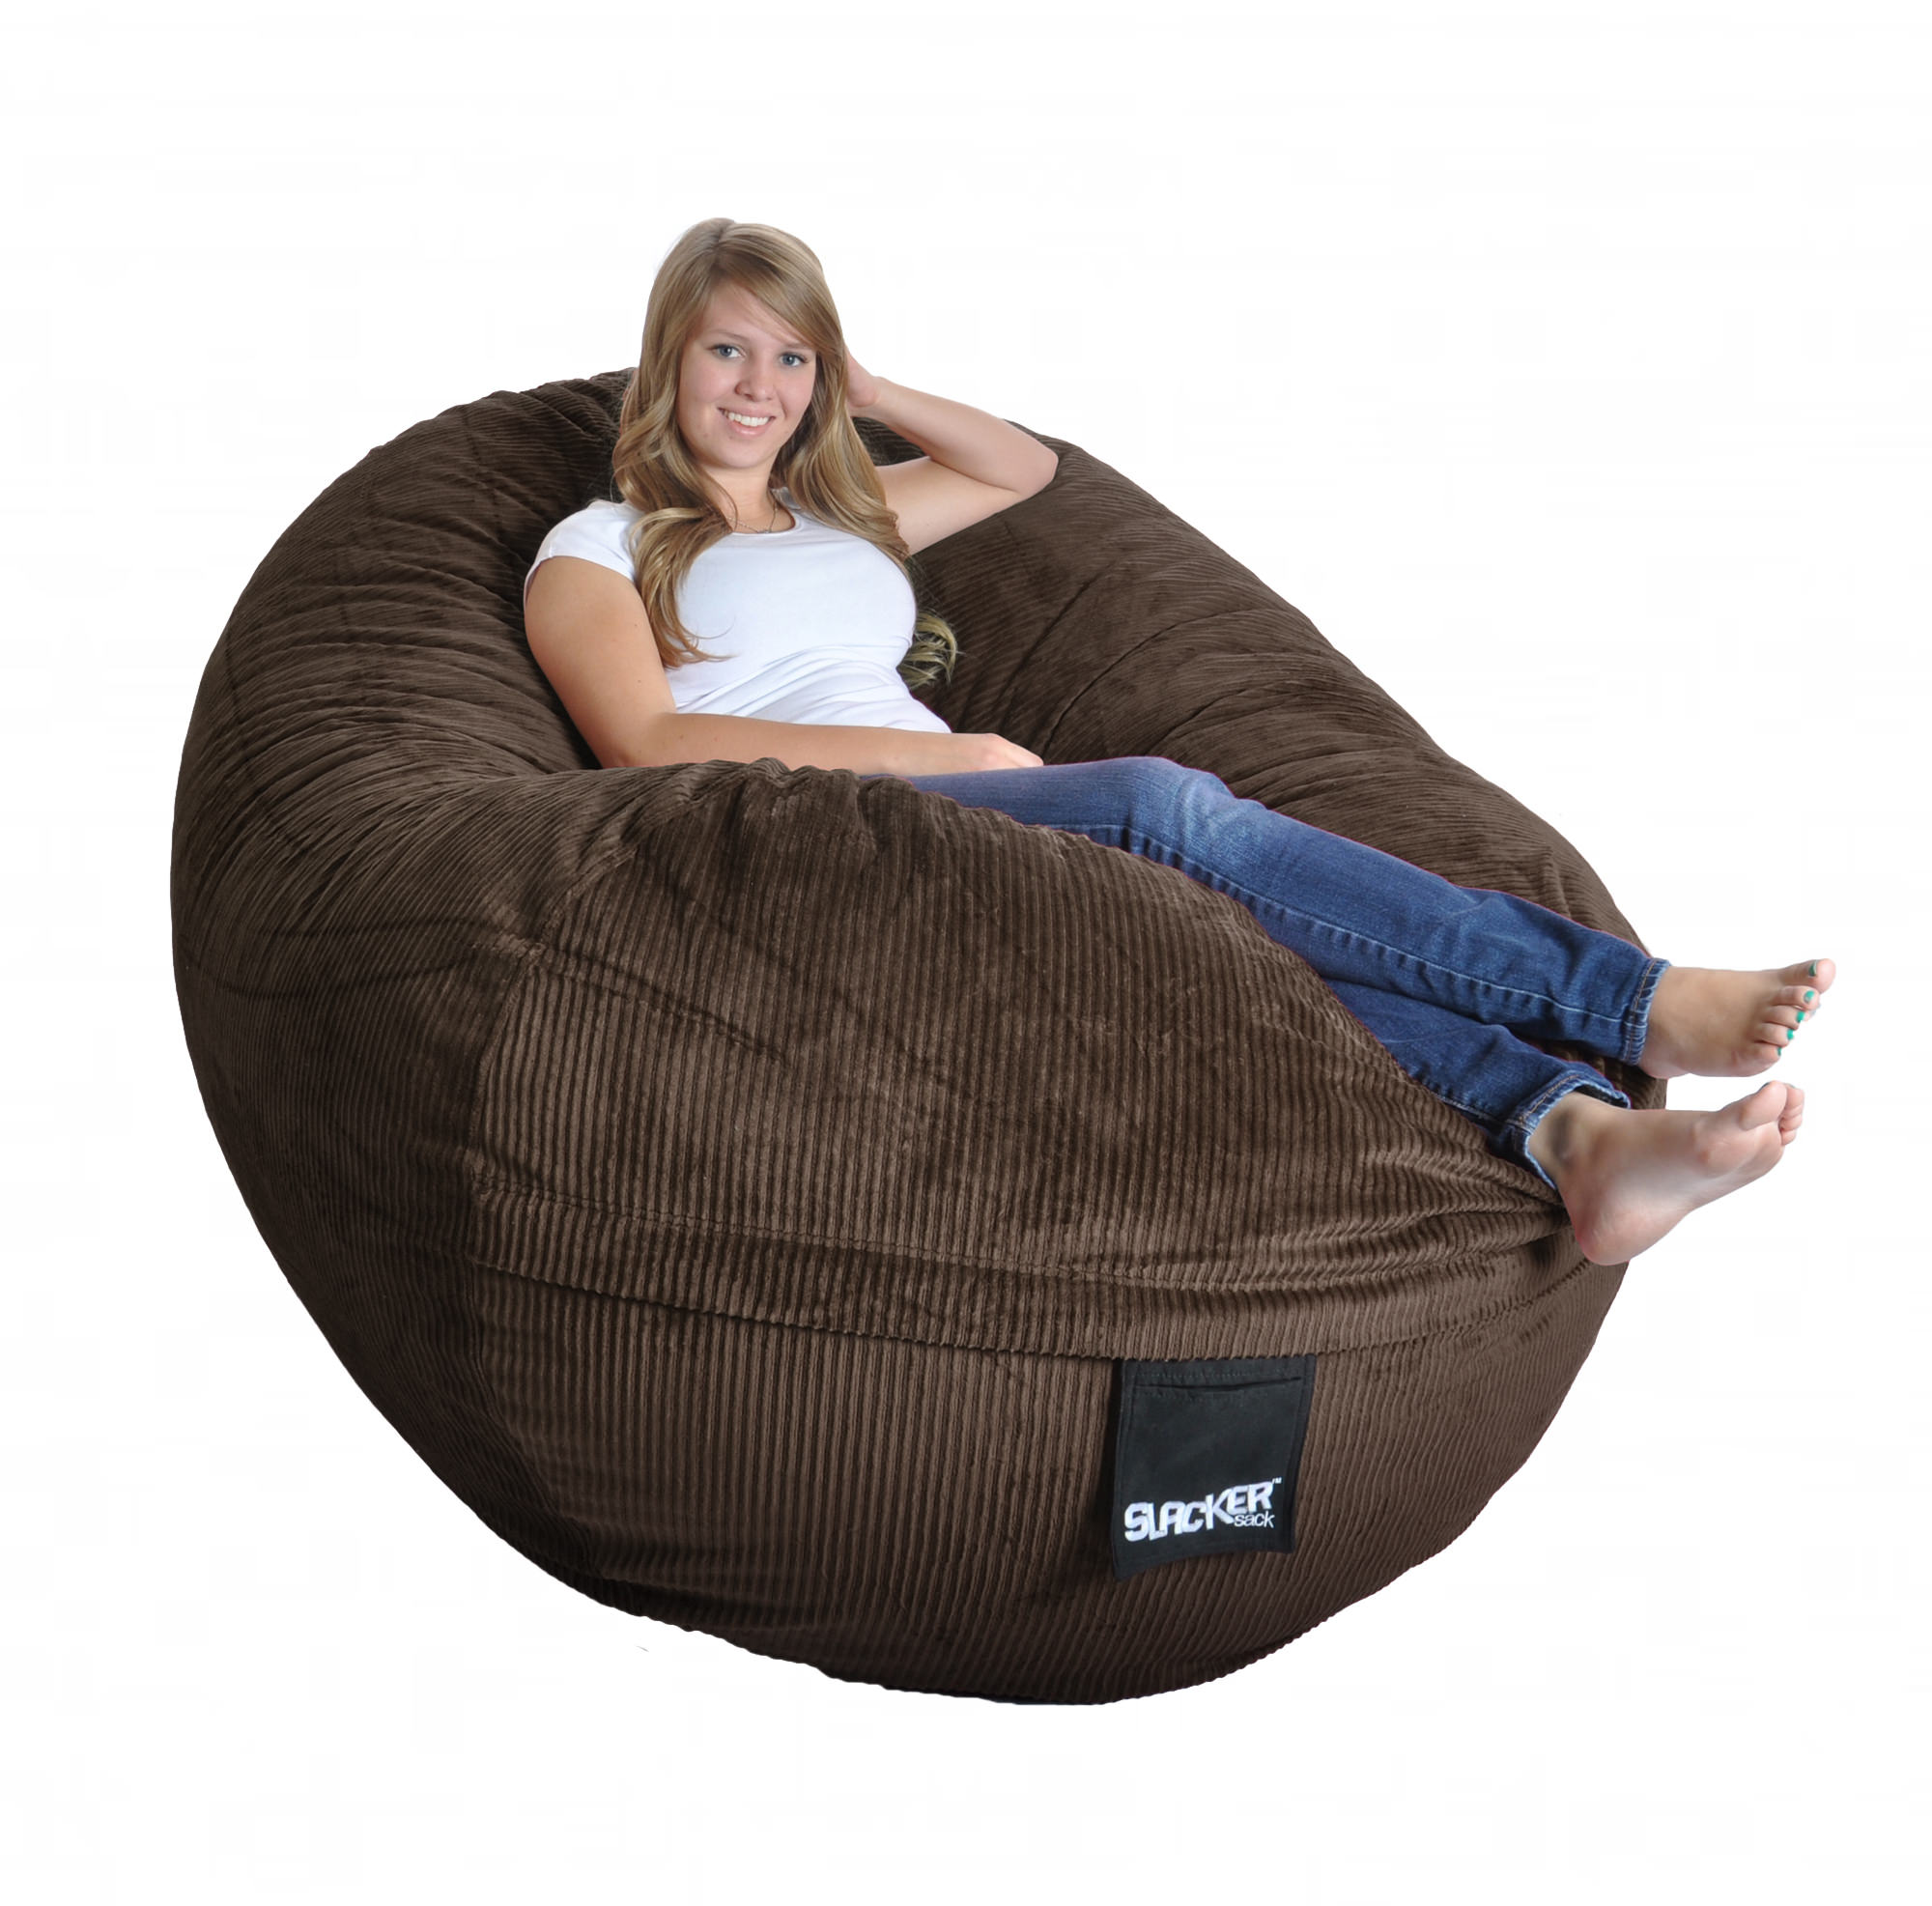 Chocolate Corduroy Sofa Sofa Beanbag Chocolate Corduroy